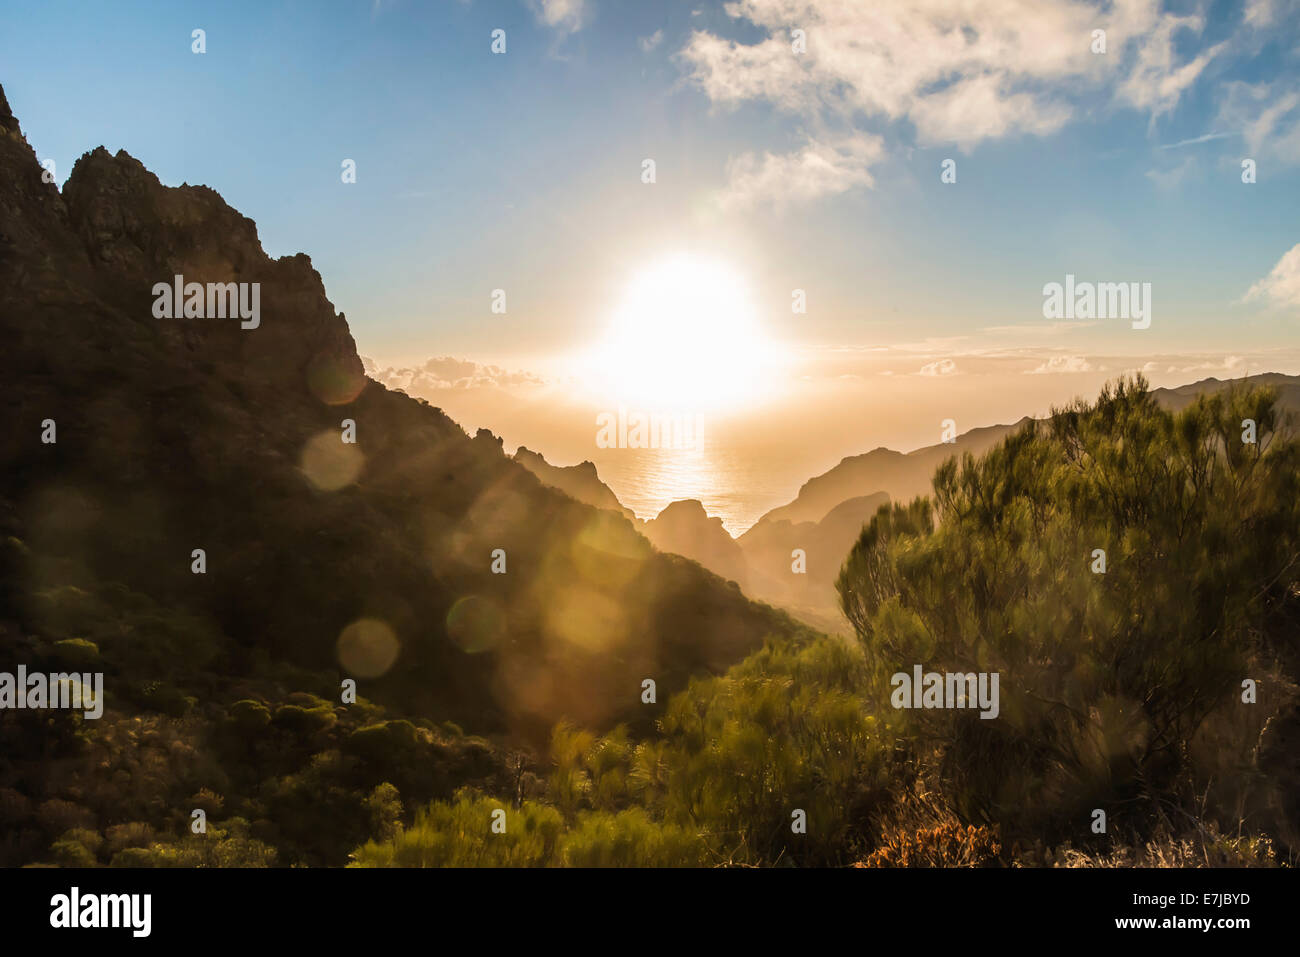 Masca Gorge, mountain silhouettes at sunset, Tenerife, Canary Islands, Spain - Stock Image